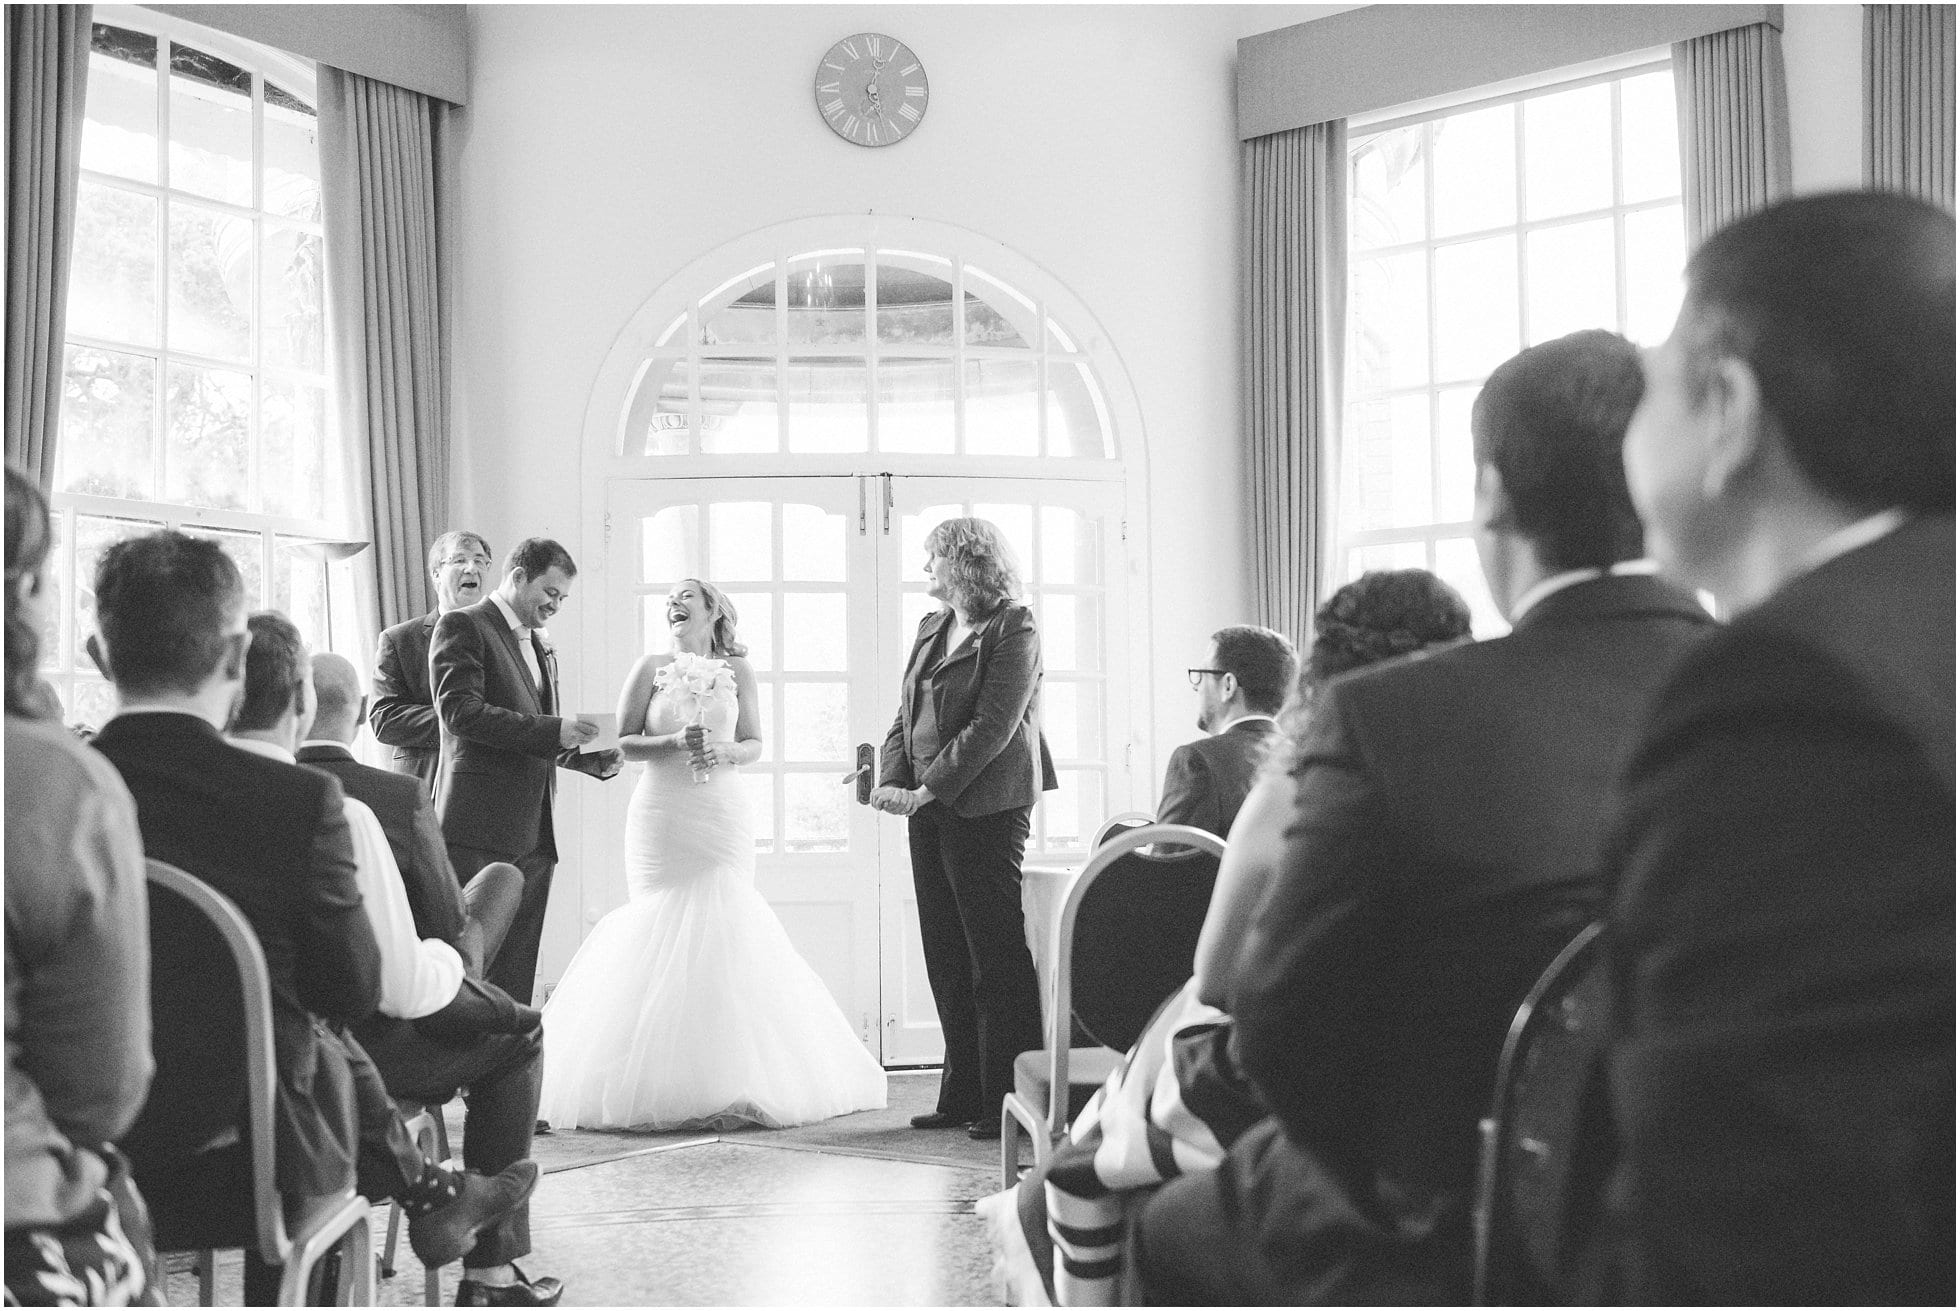 At the end of the ceremony